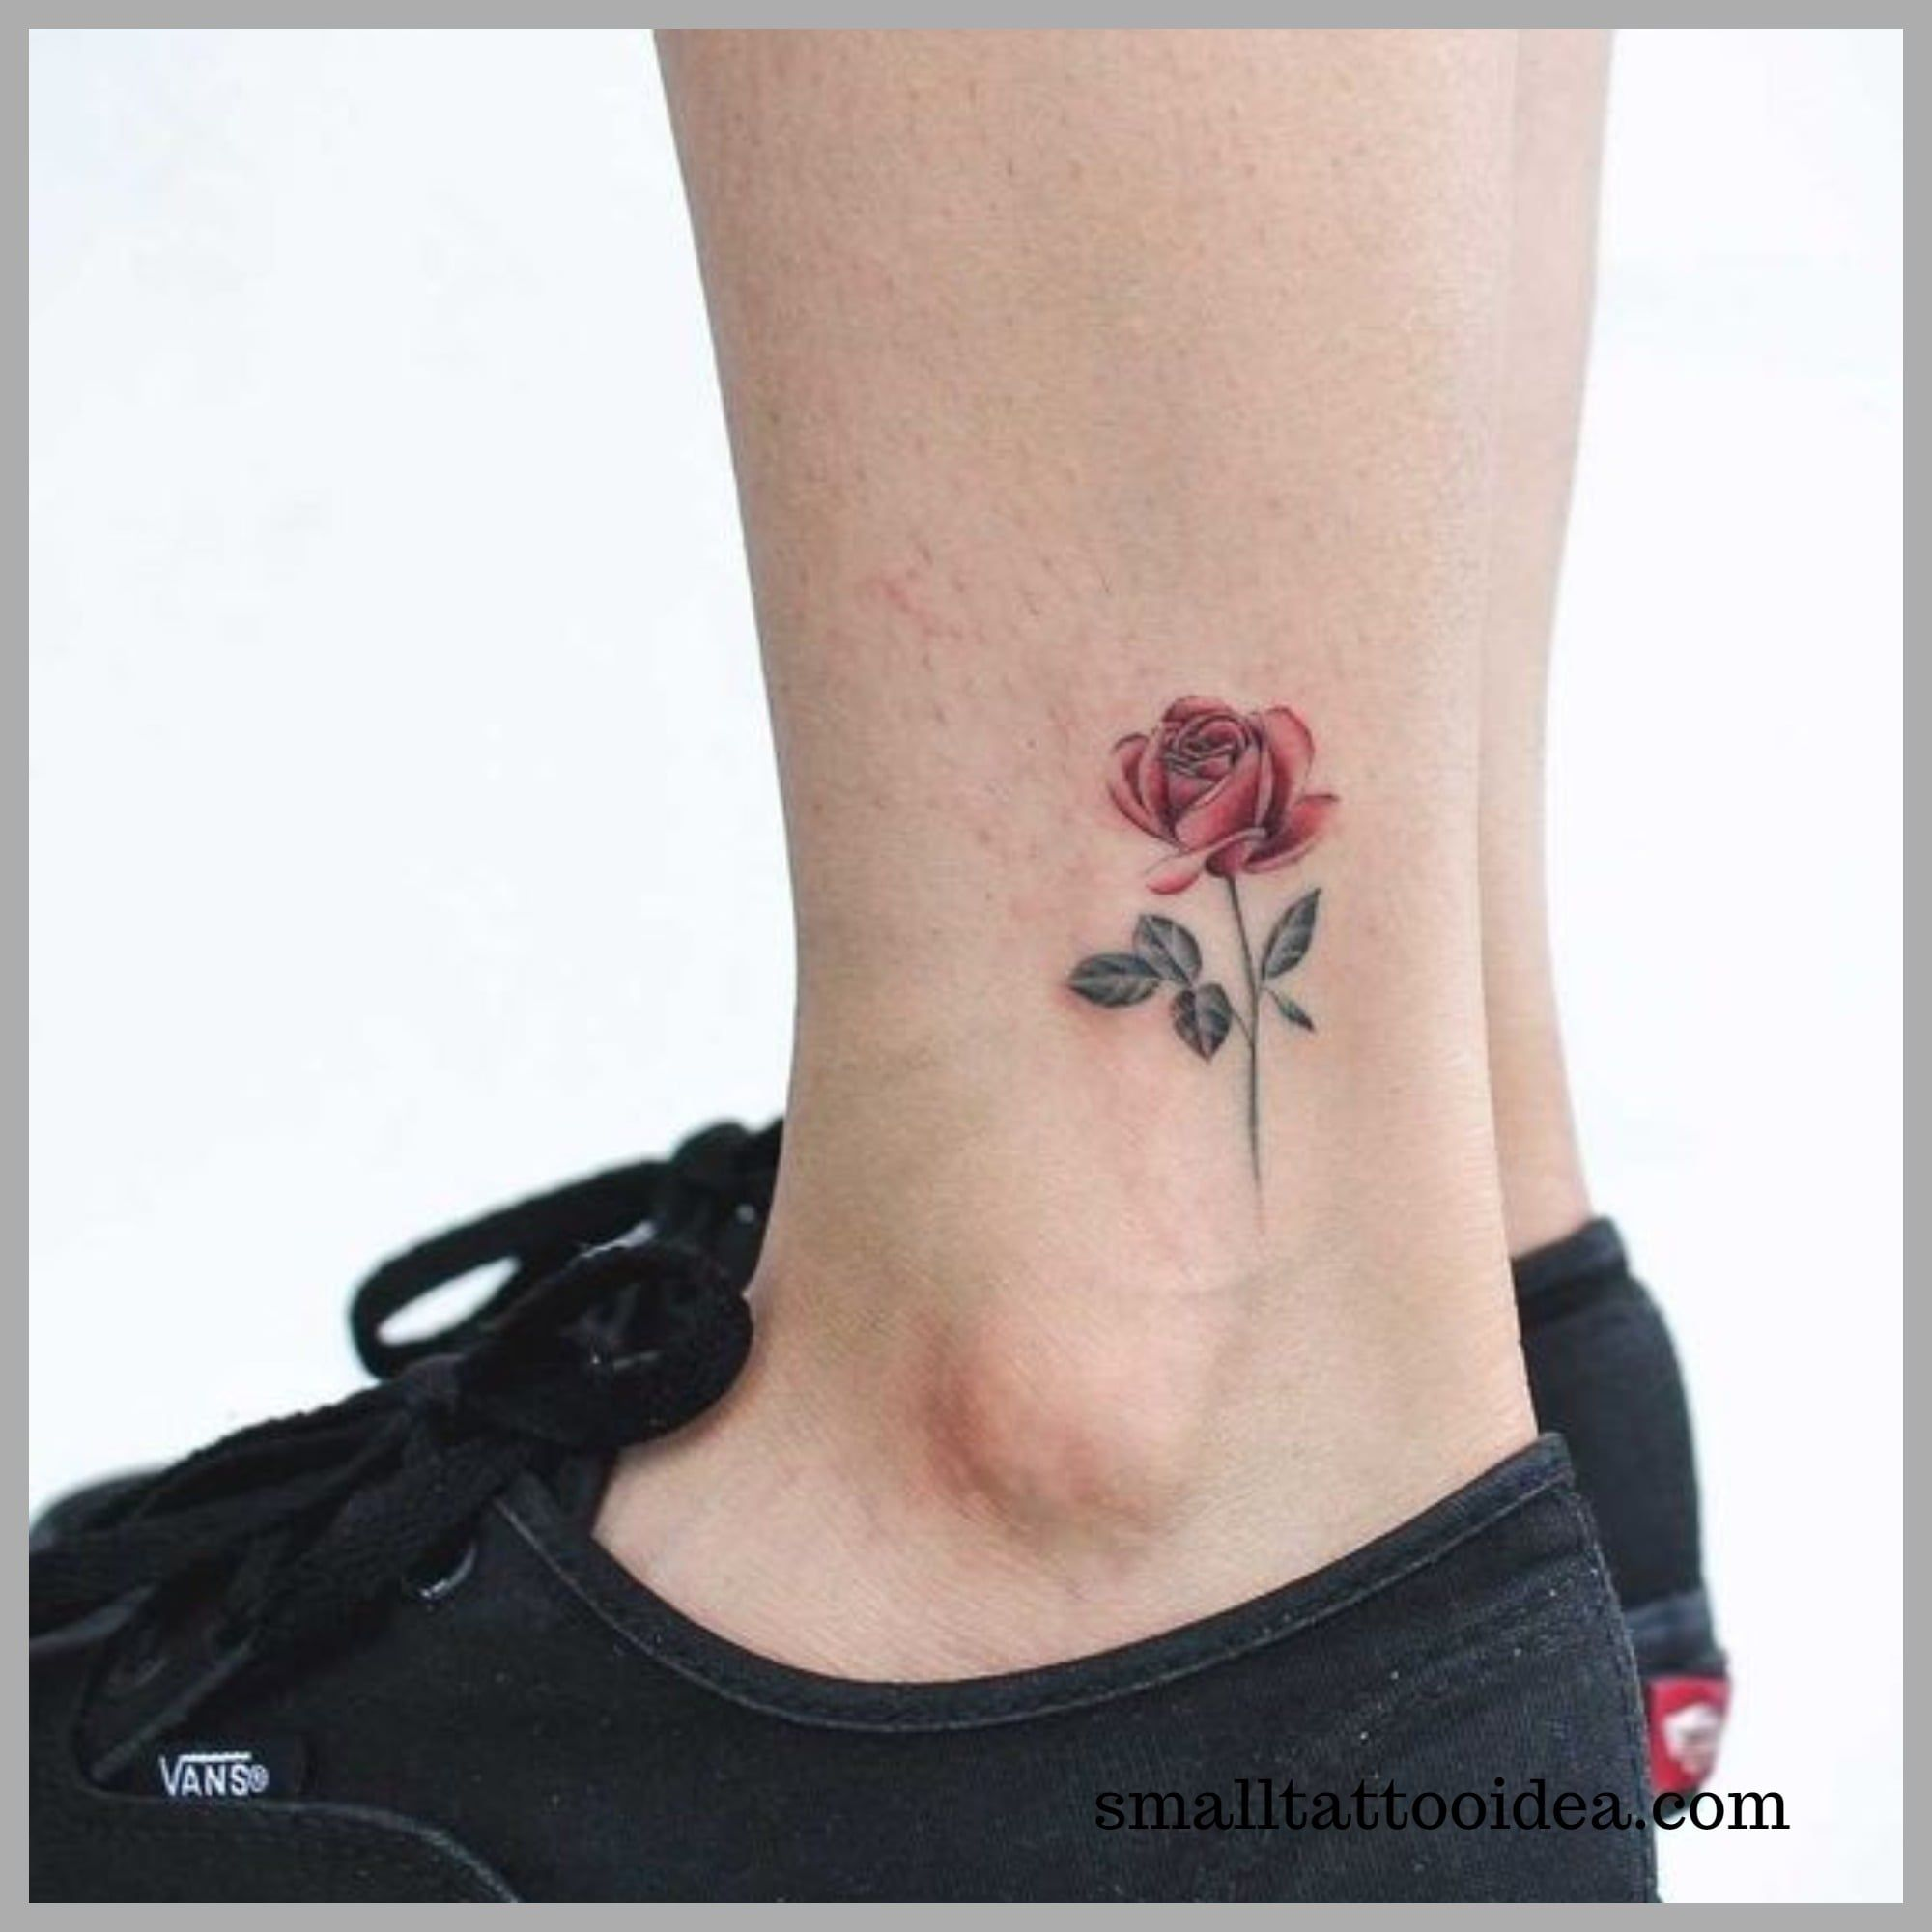 35 Small Red Rose Tattoo Ideas For Girls Tattoo Rose Tattoos For Women Rose Tattoo On Ankle Small Rose Tattoo